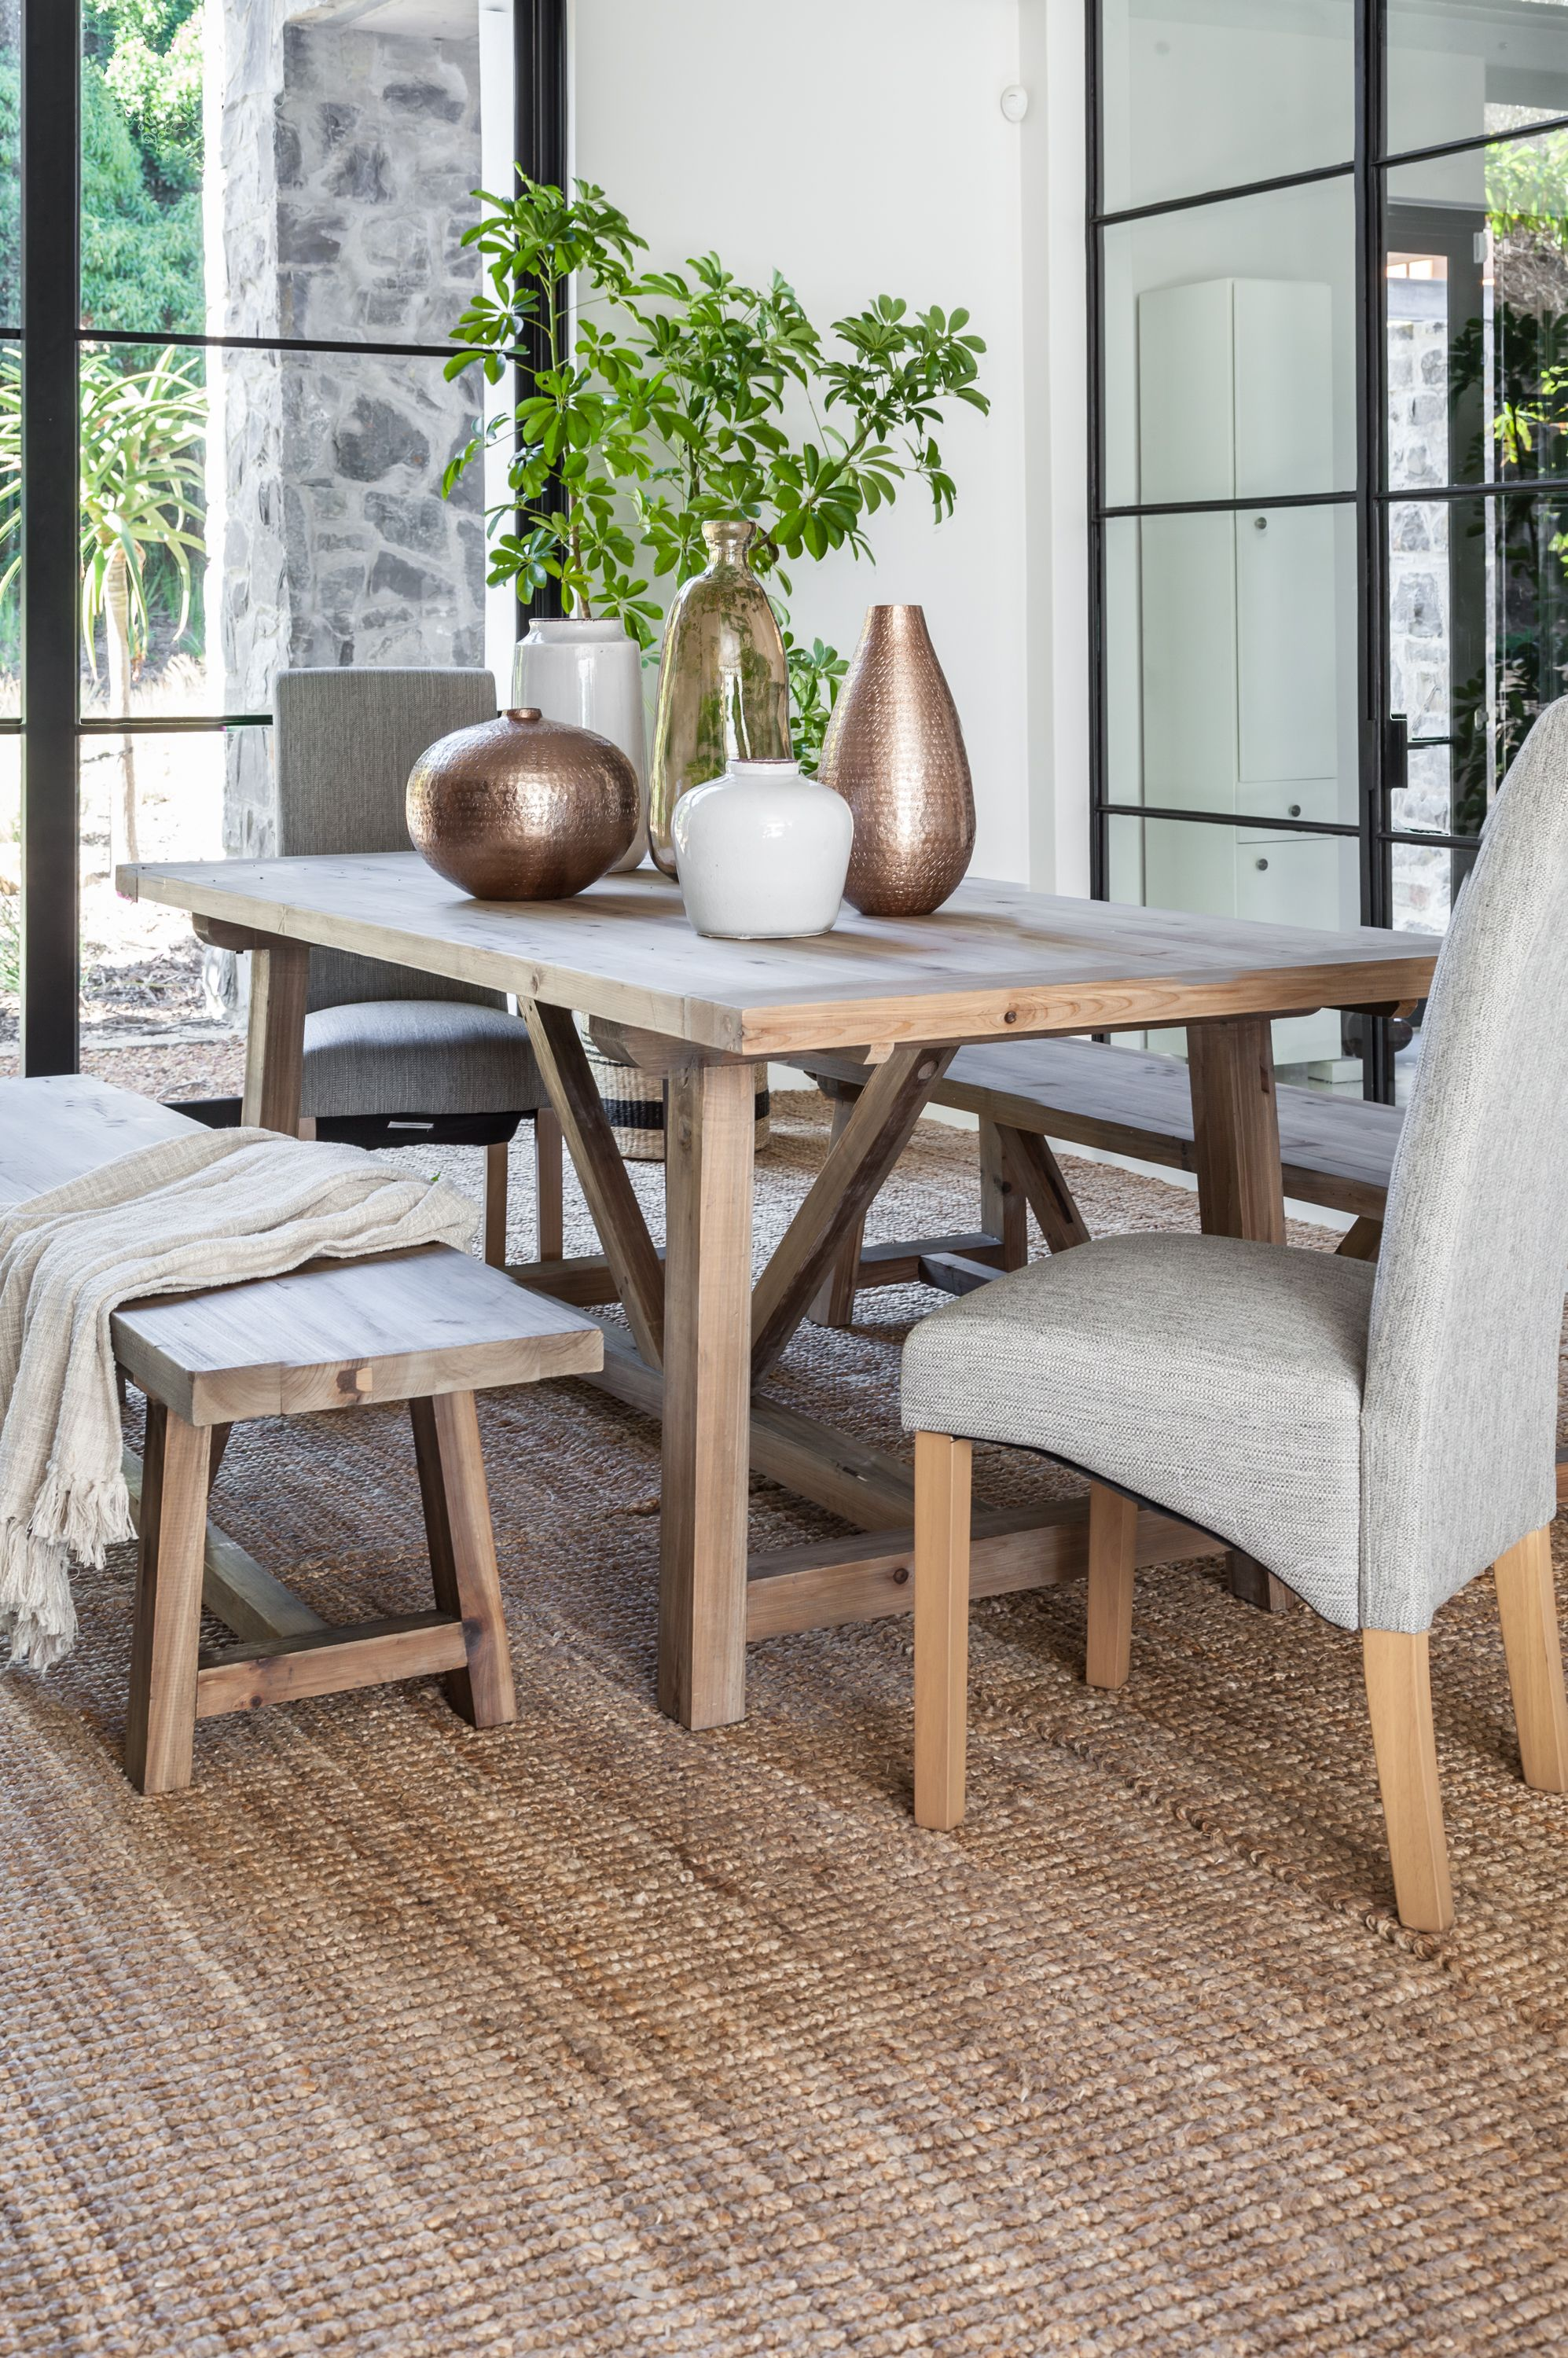 The Lightwood Thomas Dining Table Has An Earthy Look And Feel And